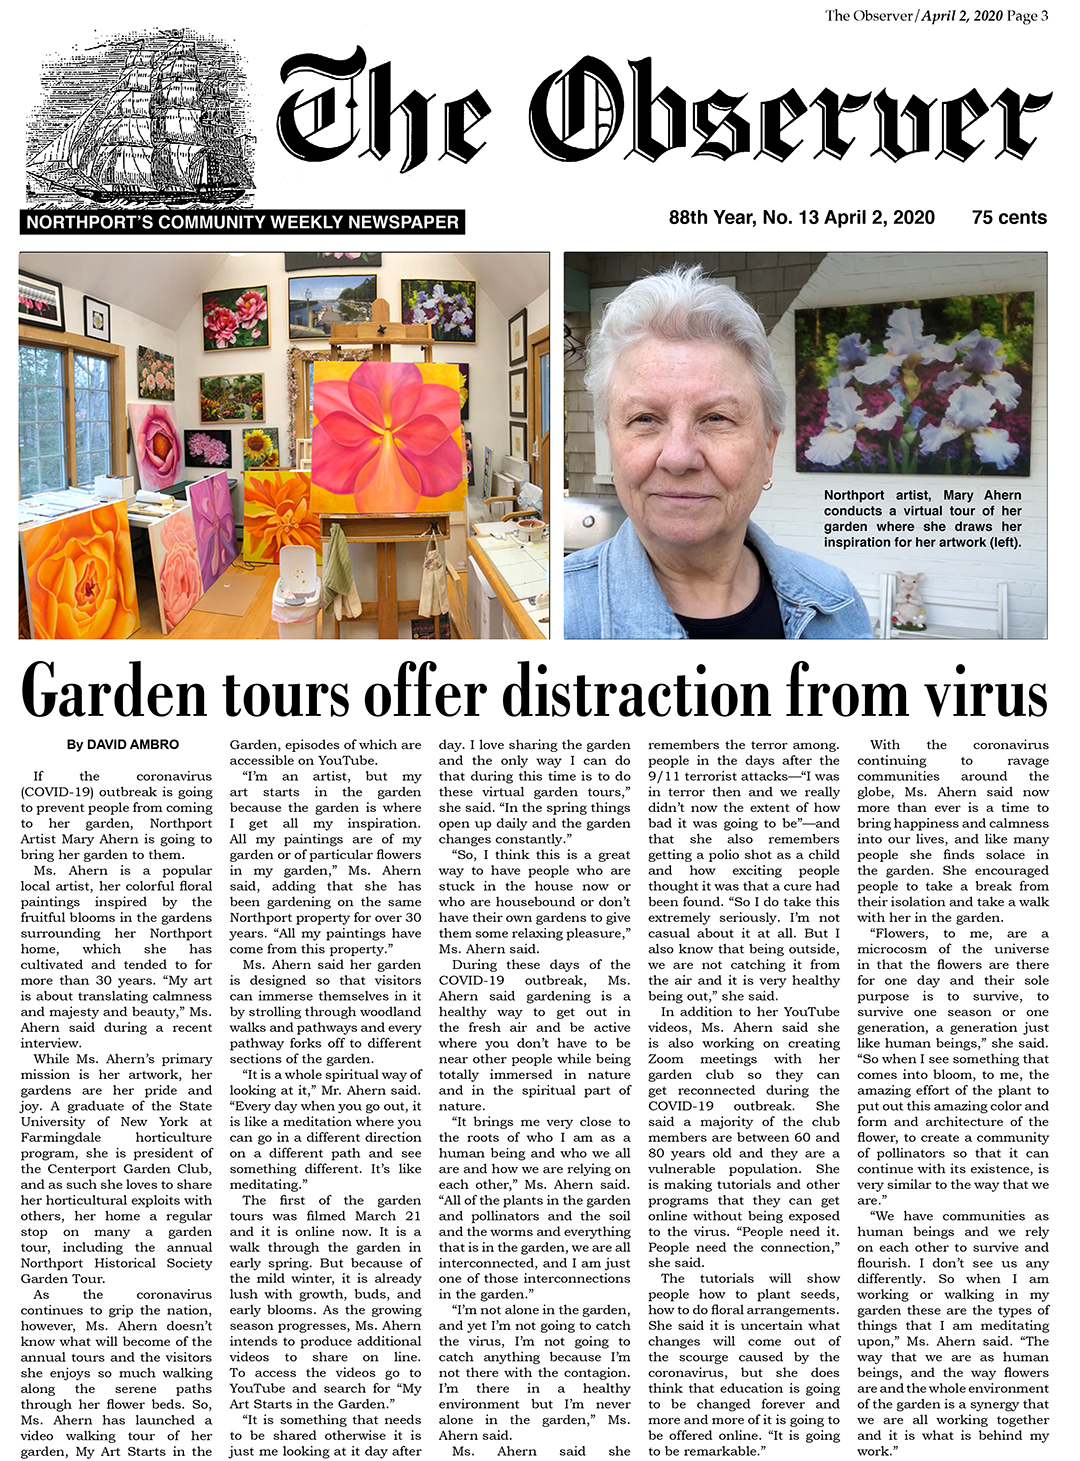 The Observer Article: Garden Tours Offer Distraction From Virus by David Ambro for The Observer.